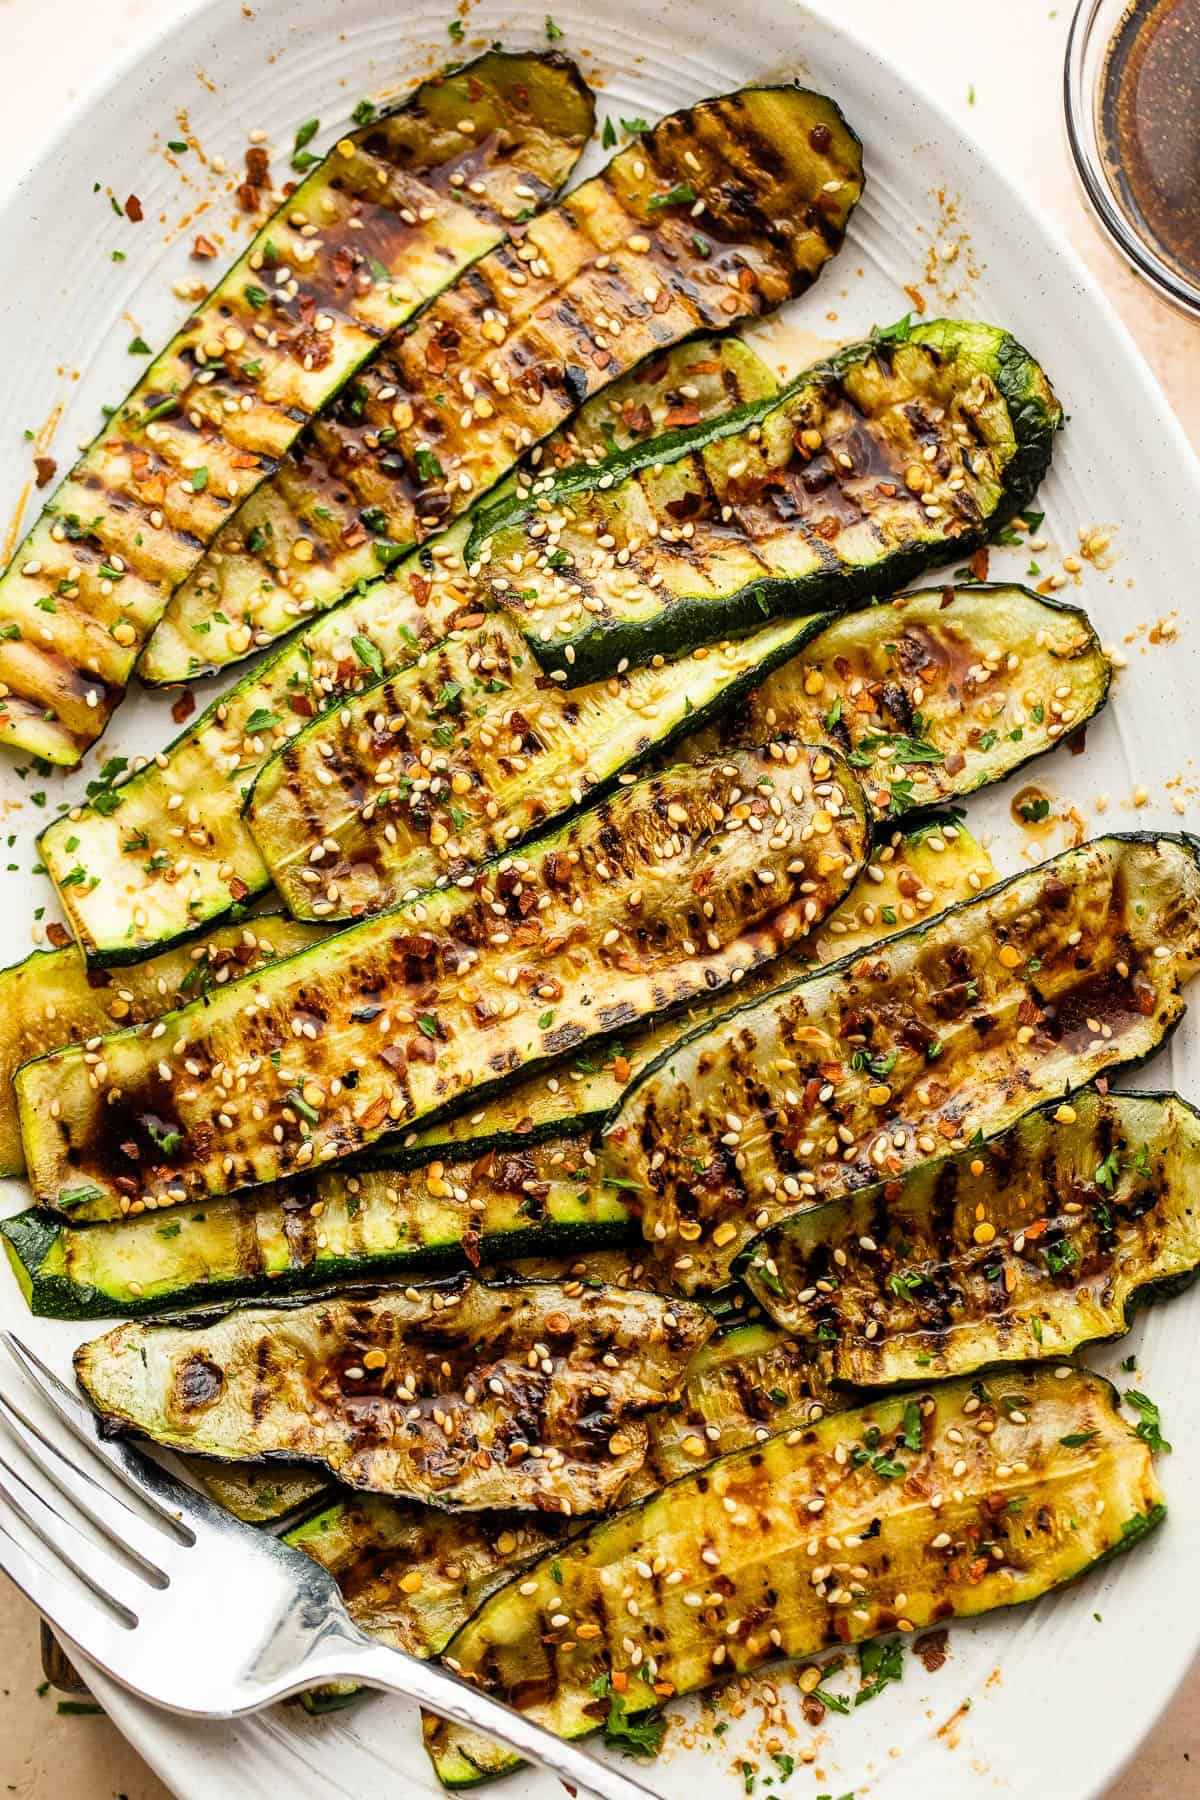 grilled zucchini slices served on a plate with a fork on the side